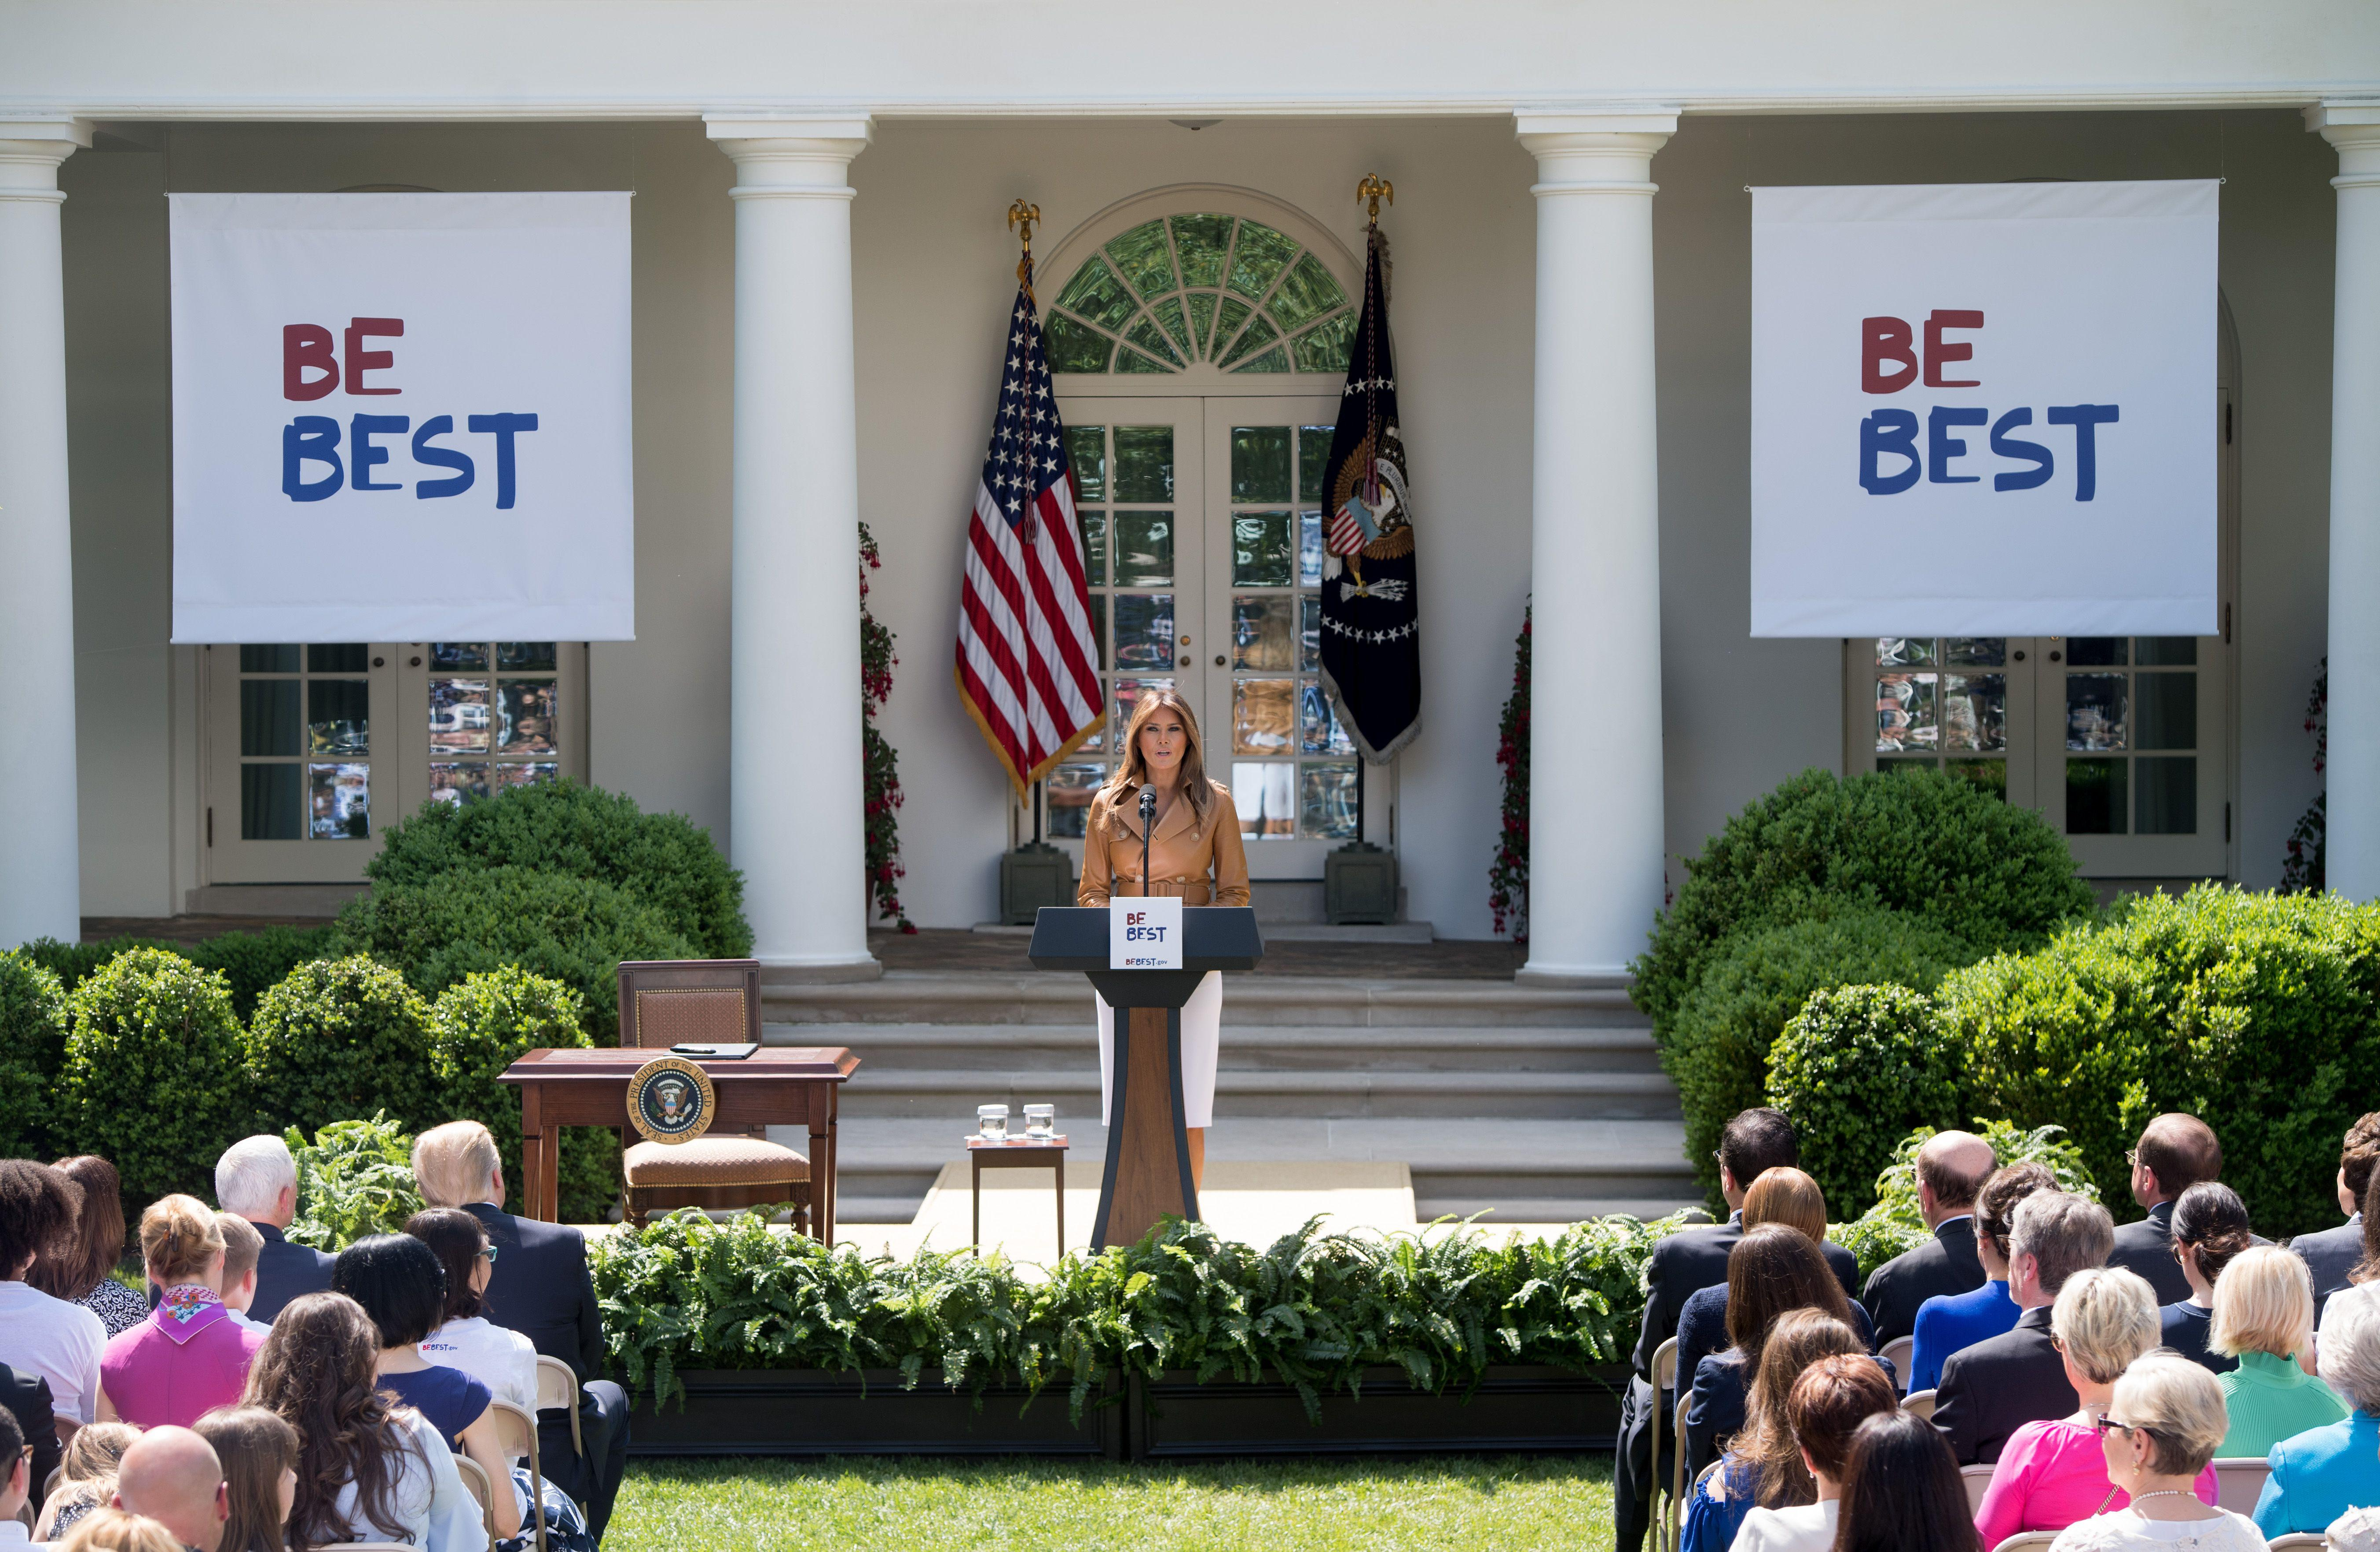 US First Lady Melania Trump announces her 'Be Best' children's initiative in the Rose Garden of the White House in Washington, DC, May 7, 2018. (Photo by SAUL LOEB / AFP)        (Photo credit should read SAUL LOEB/AFP/Getty Images)